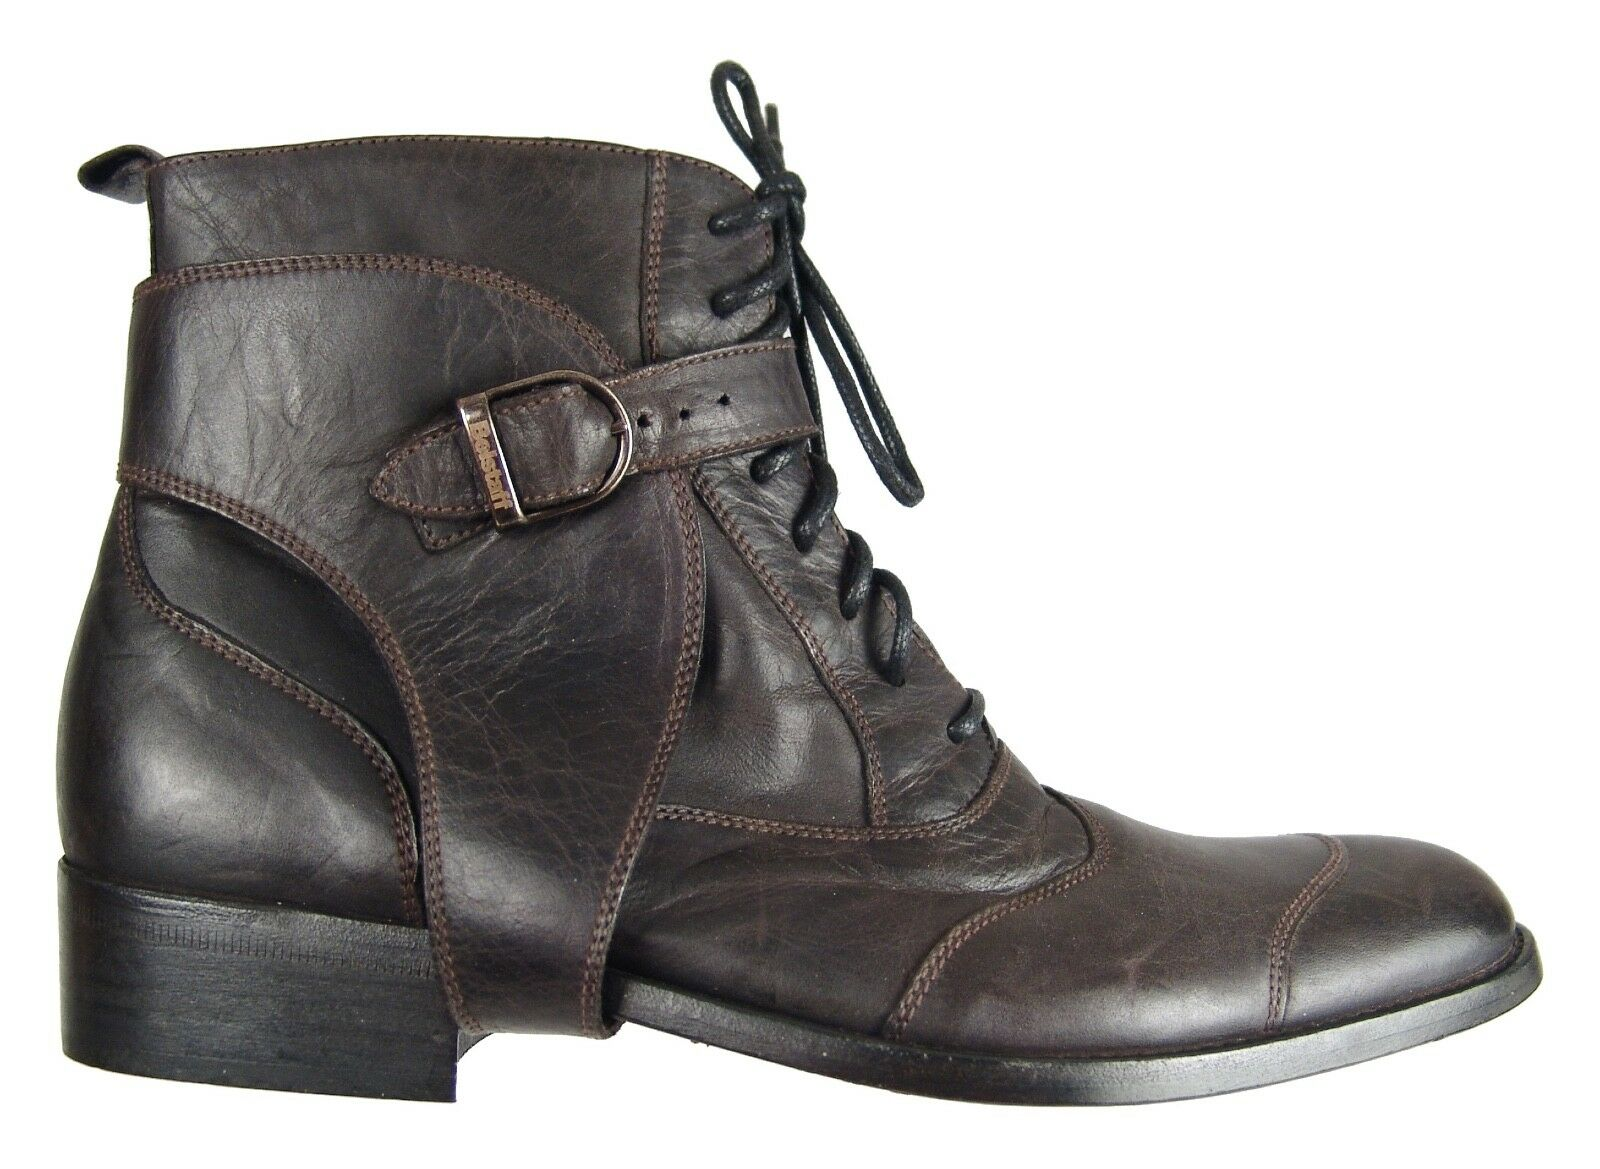 Authentic Belstaff Uomo Erik Ankle Pelle Stivali EU Size 42 Shoes Made In Italy